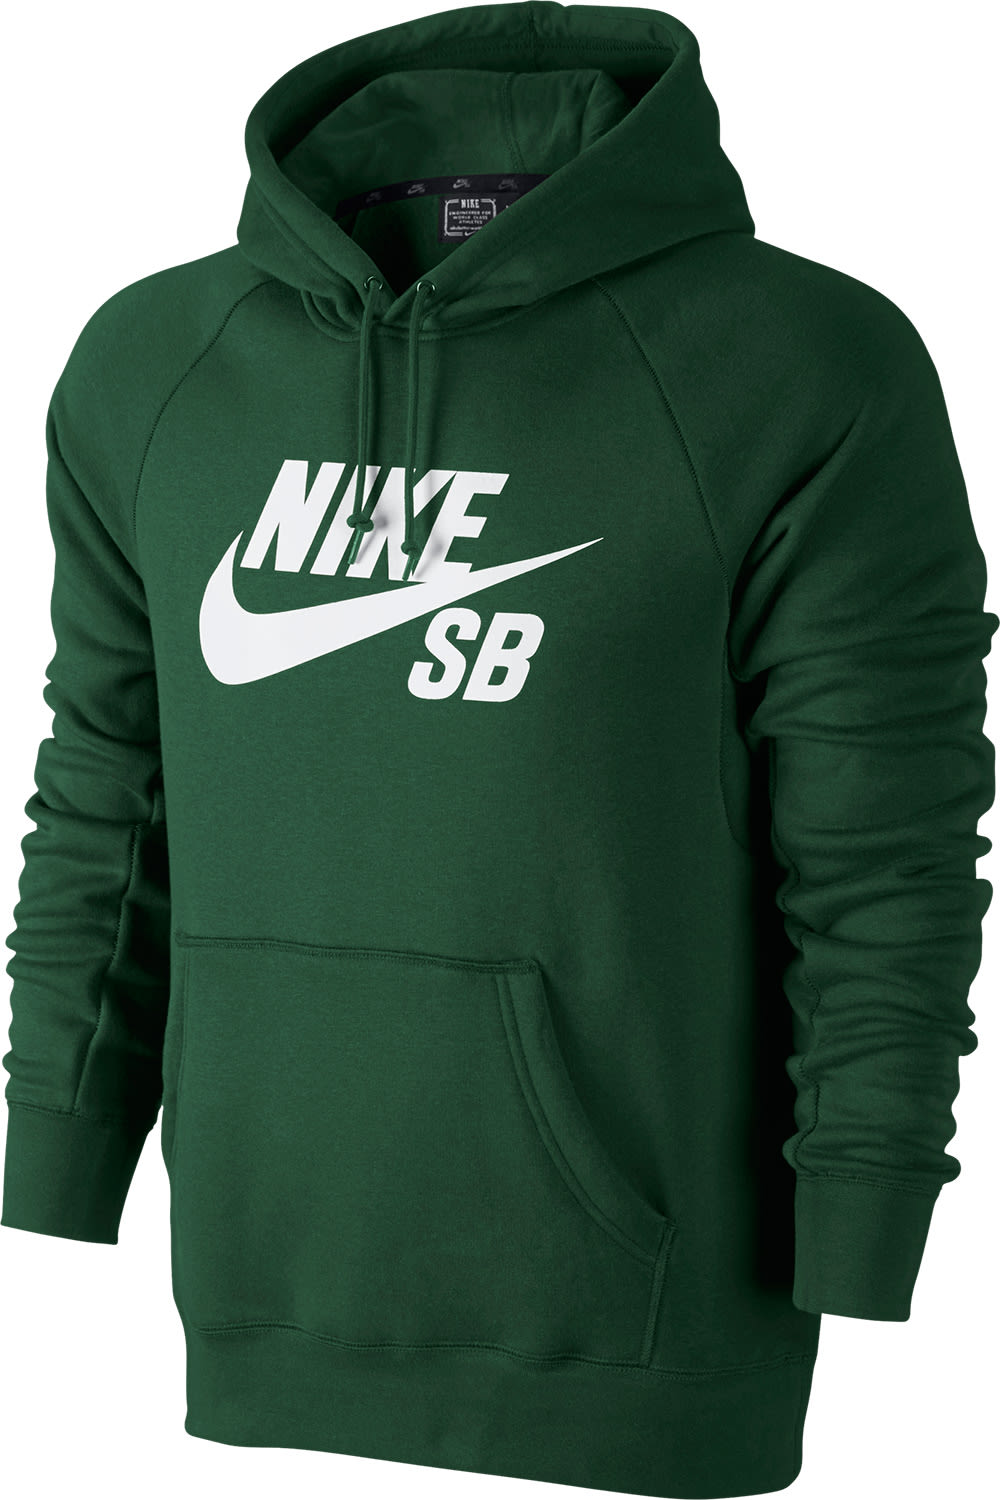 on sale nike sb icon pullover hoodie up to 50 off. Black Bedroom Furniture Sets. Home Design Ideas